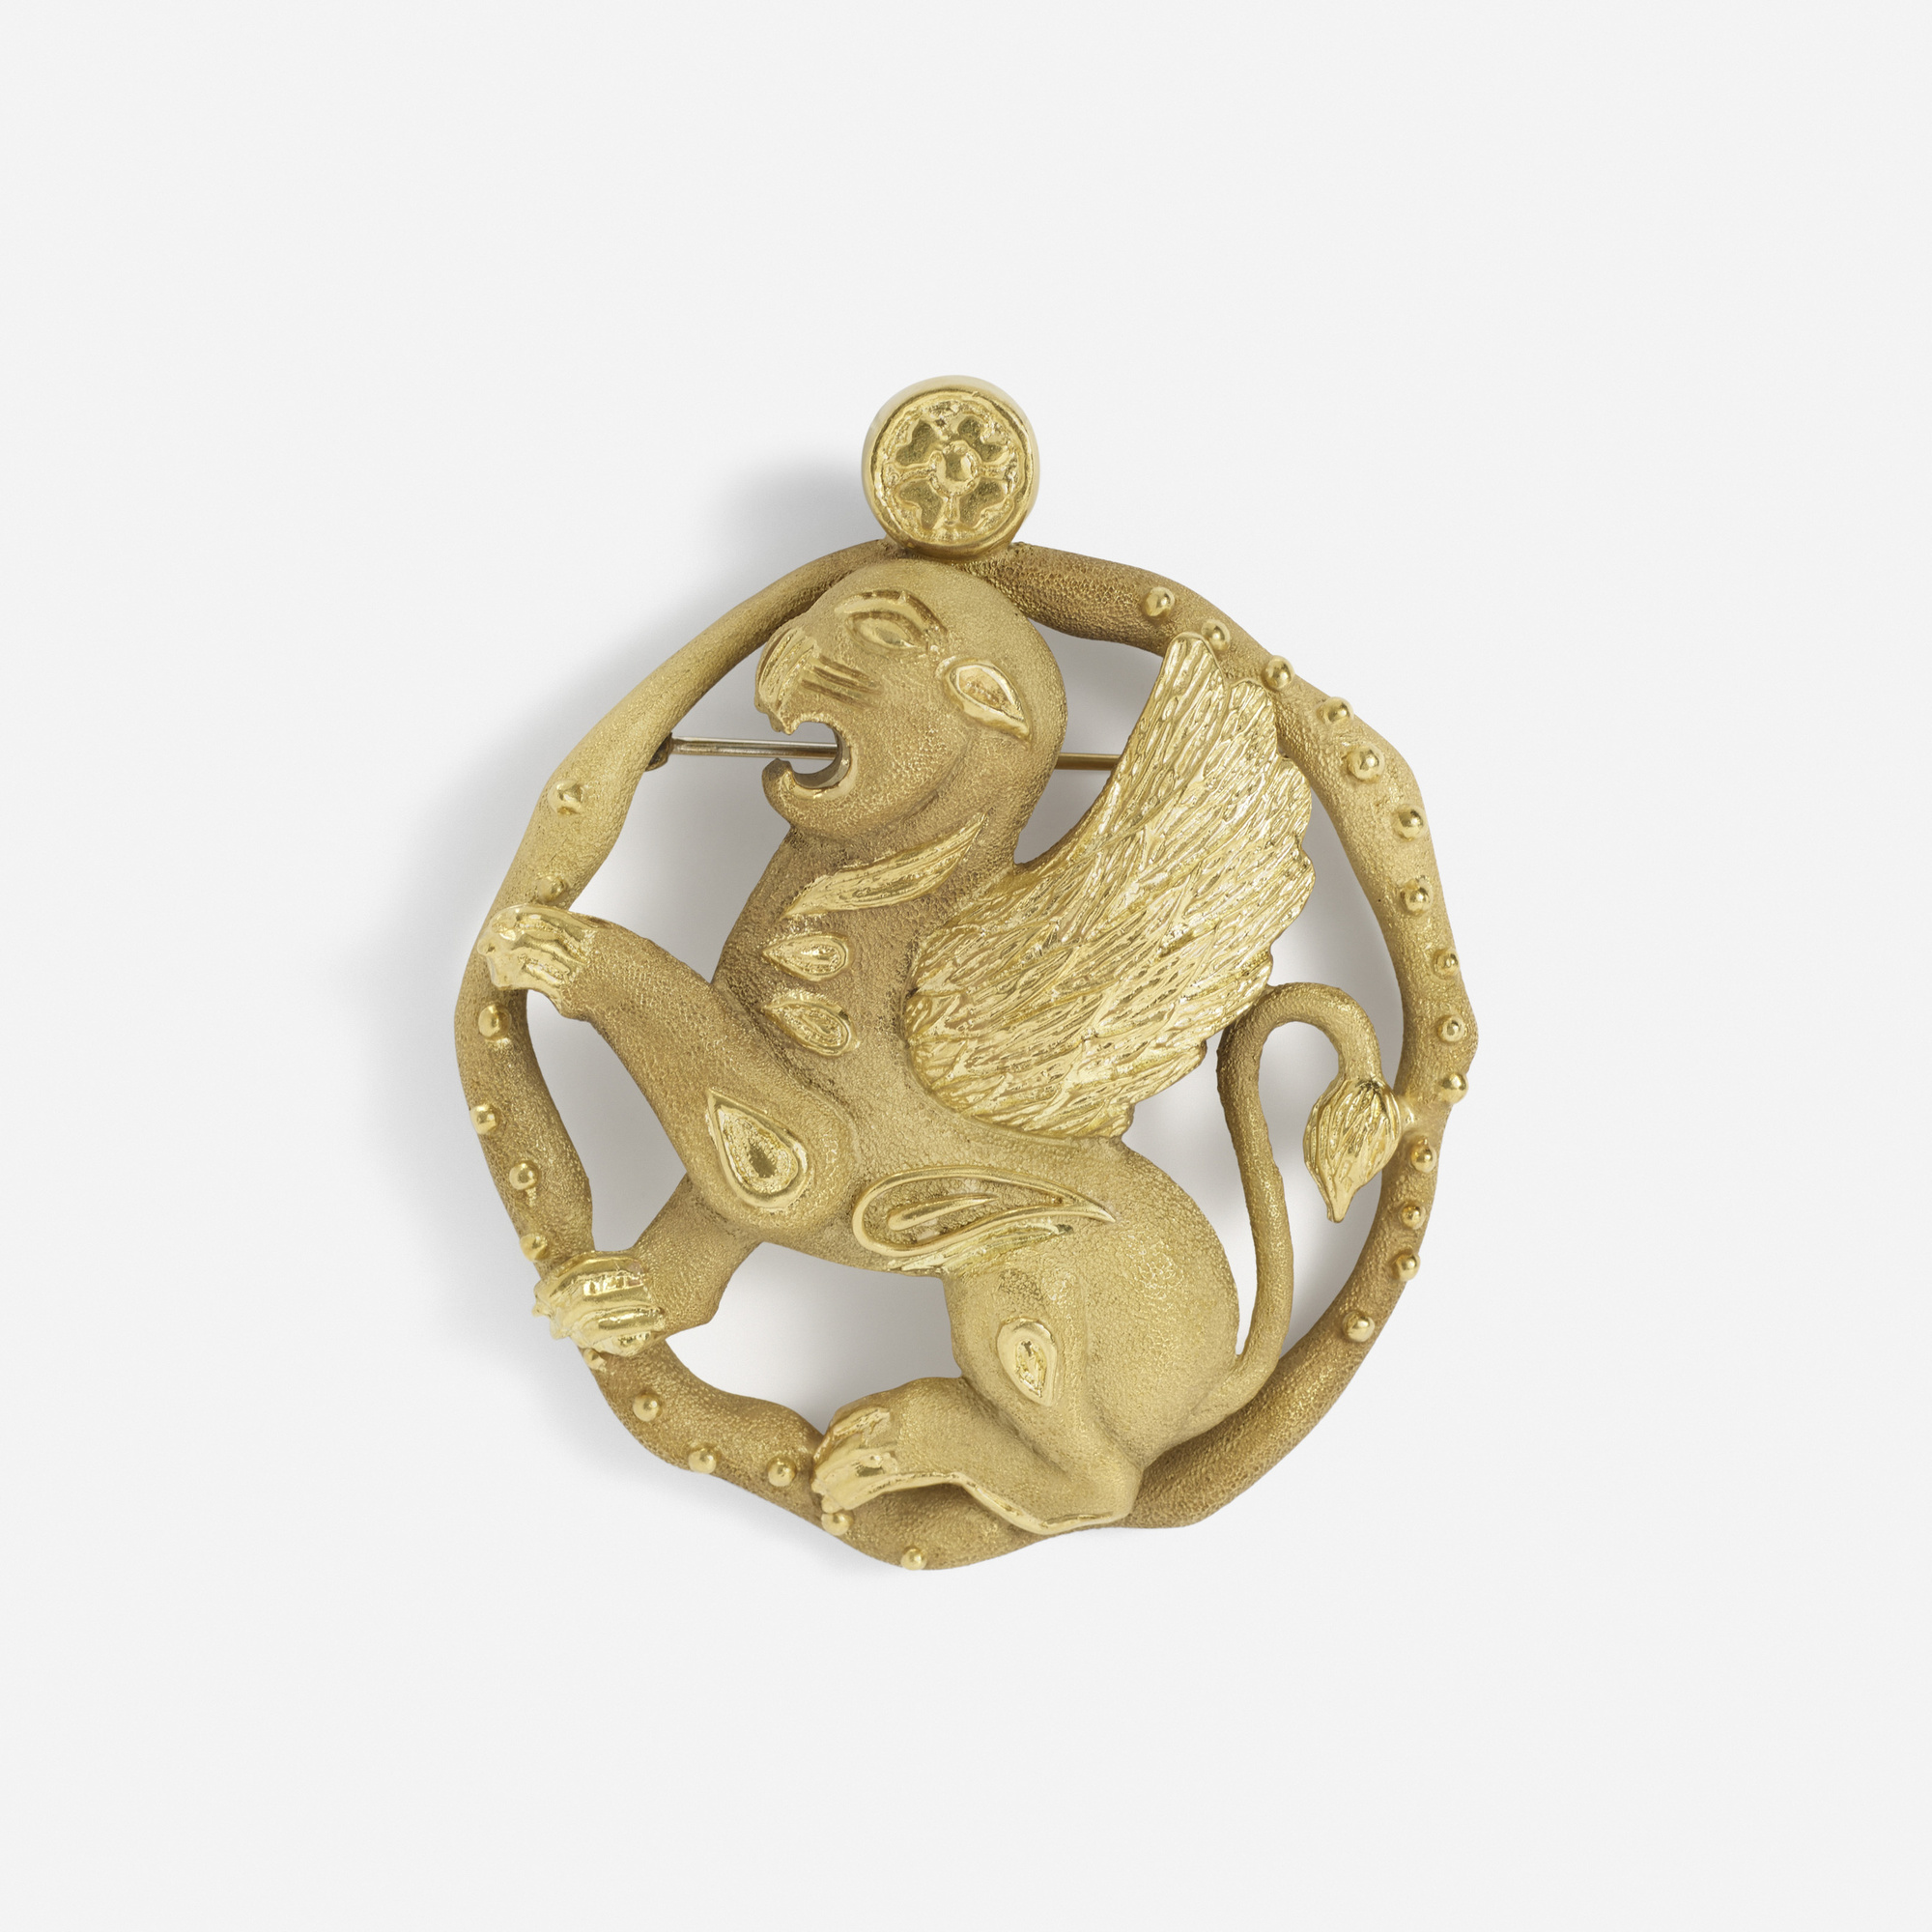 132:  / A gold Lion of Venice pendant (1 of 1)